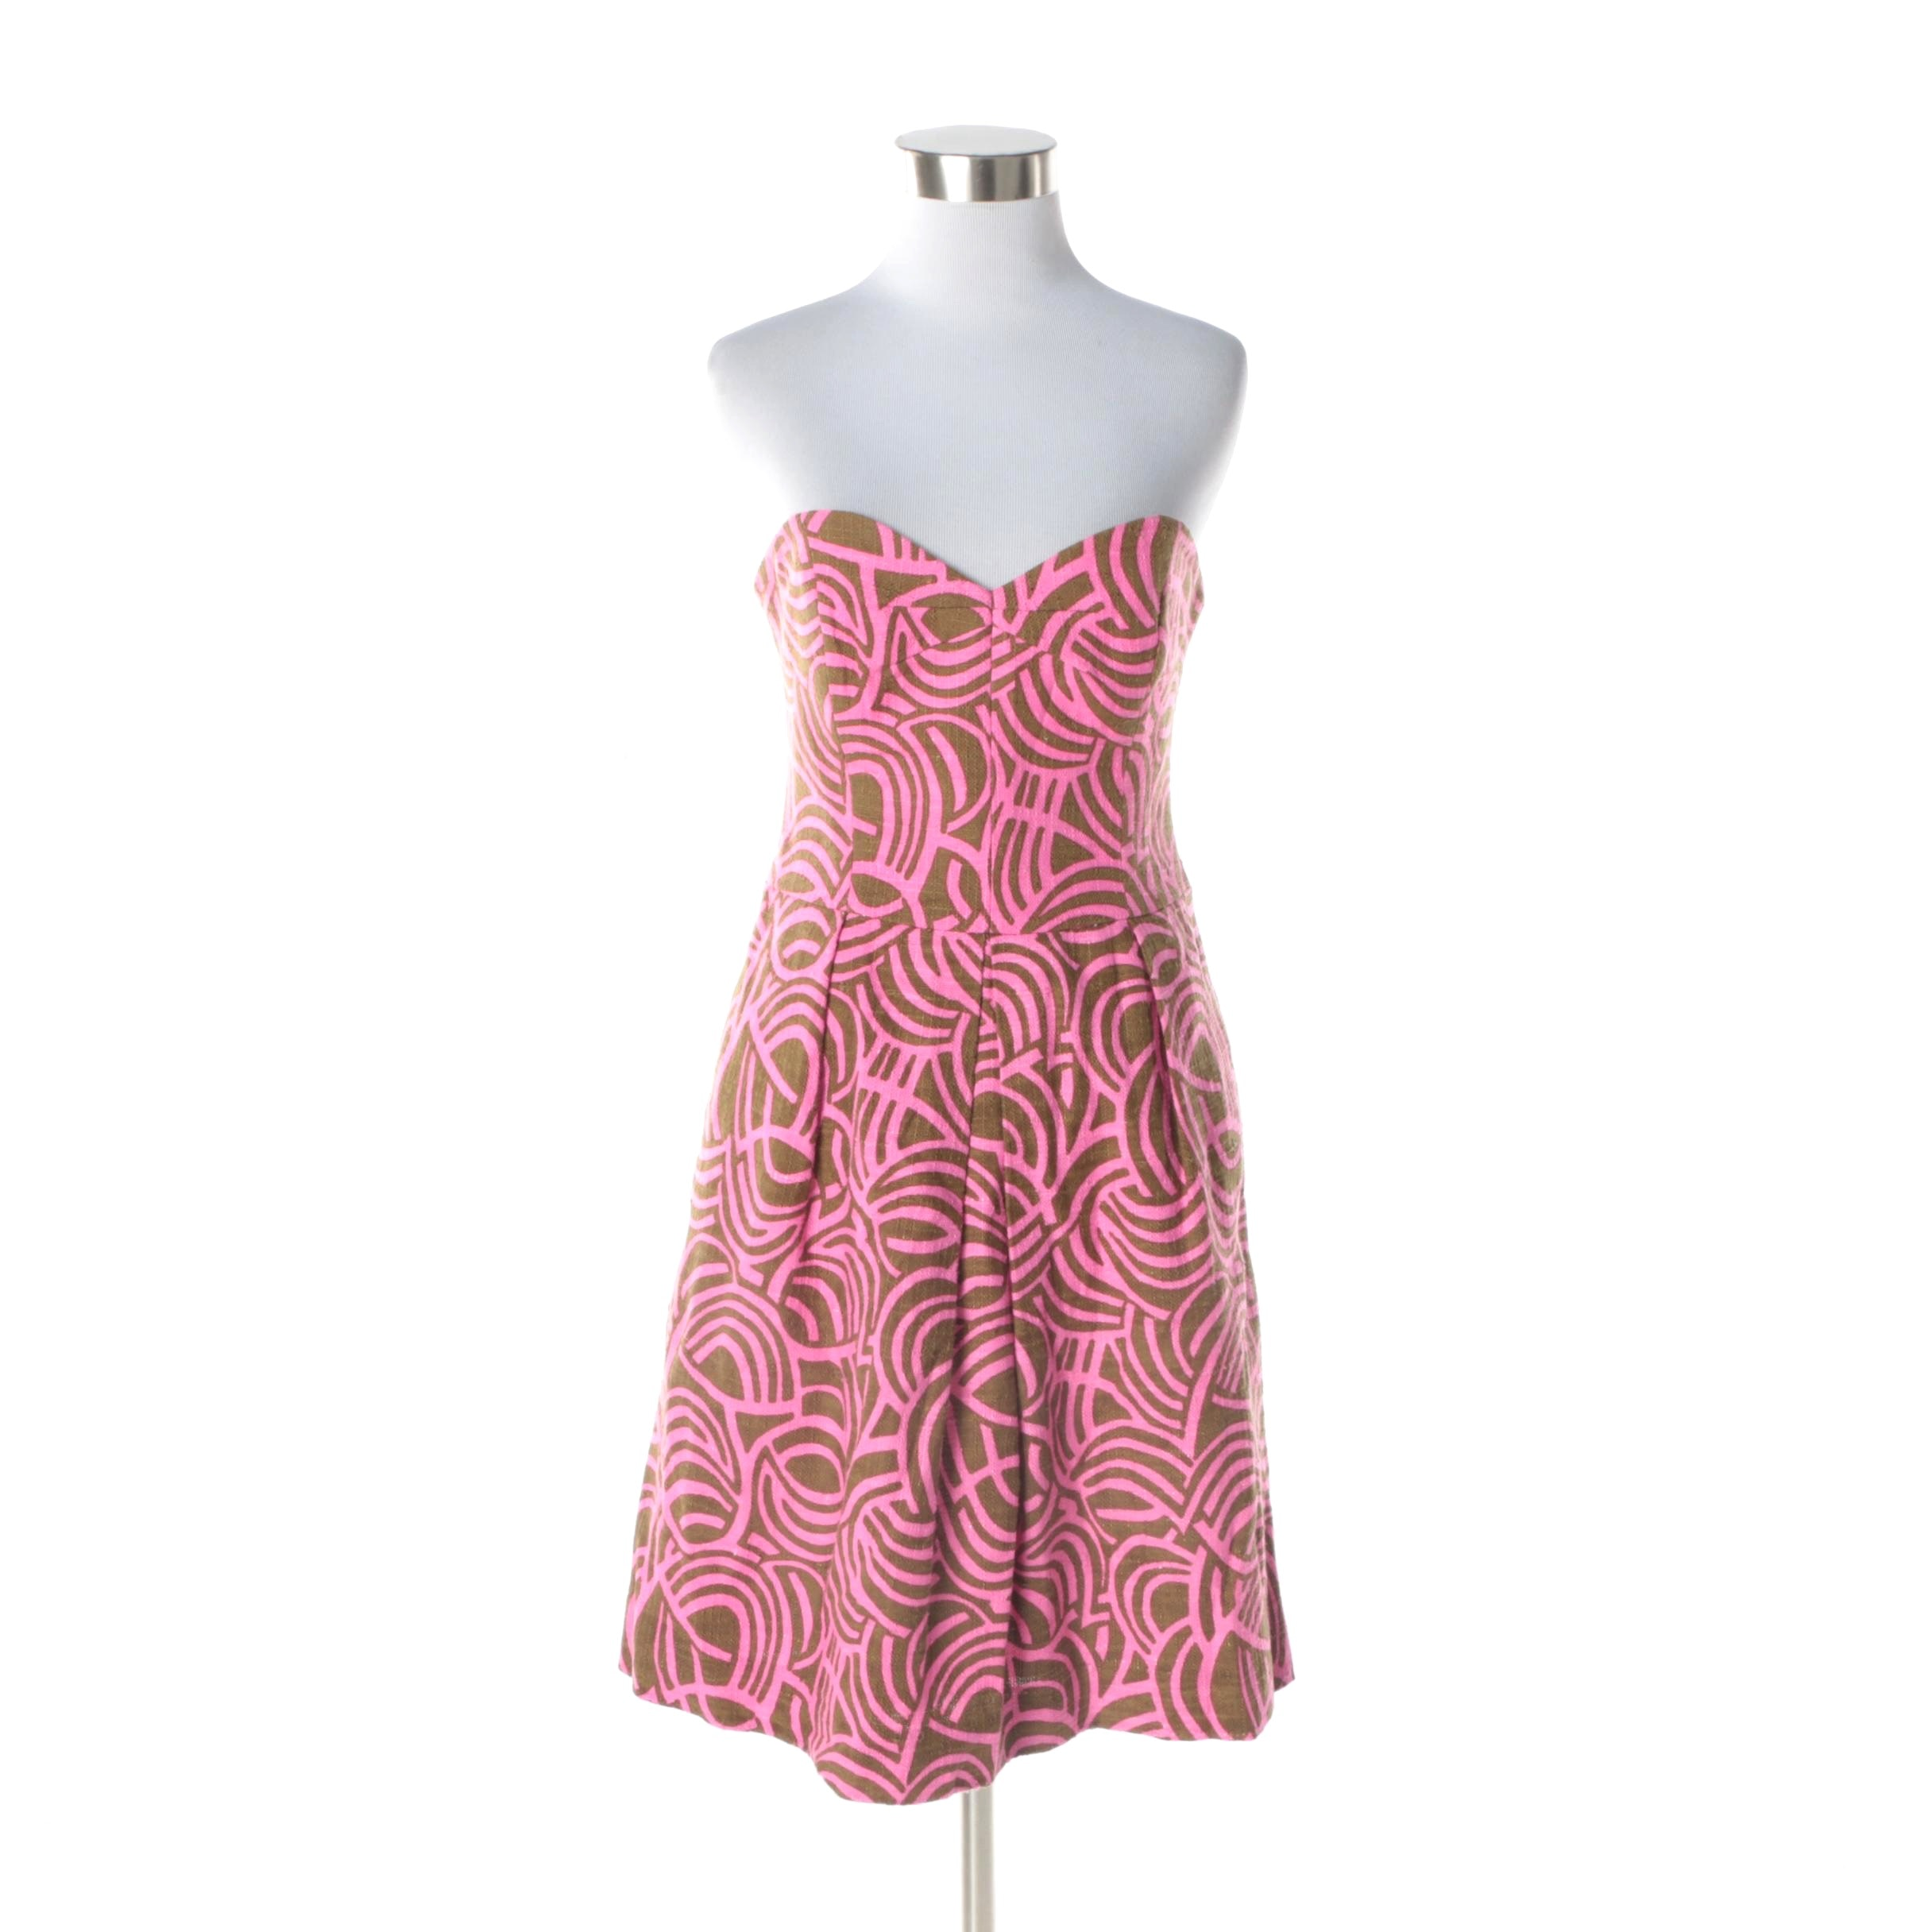 Milly of New York Pink and Brown Abstract Print Strapless Dress